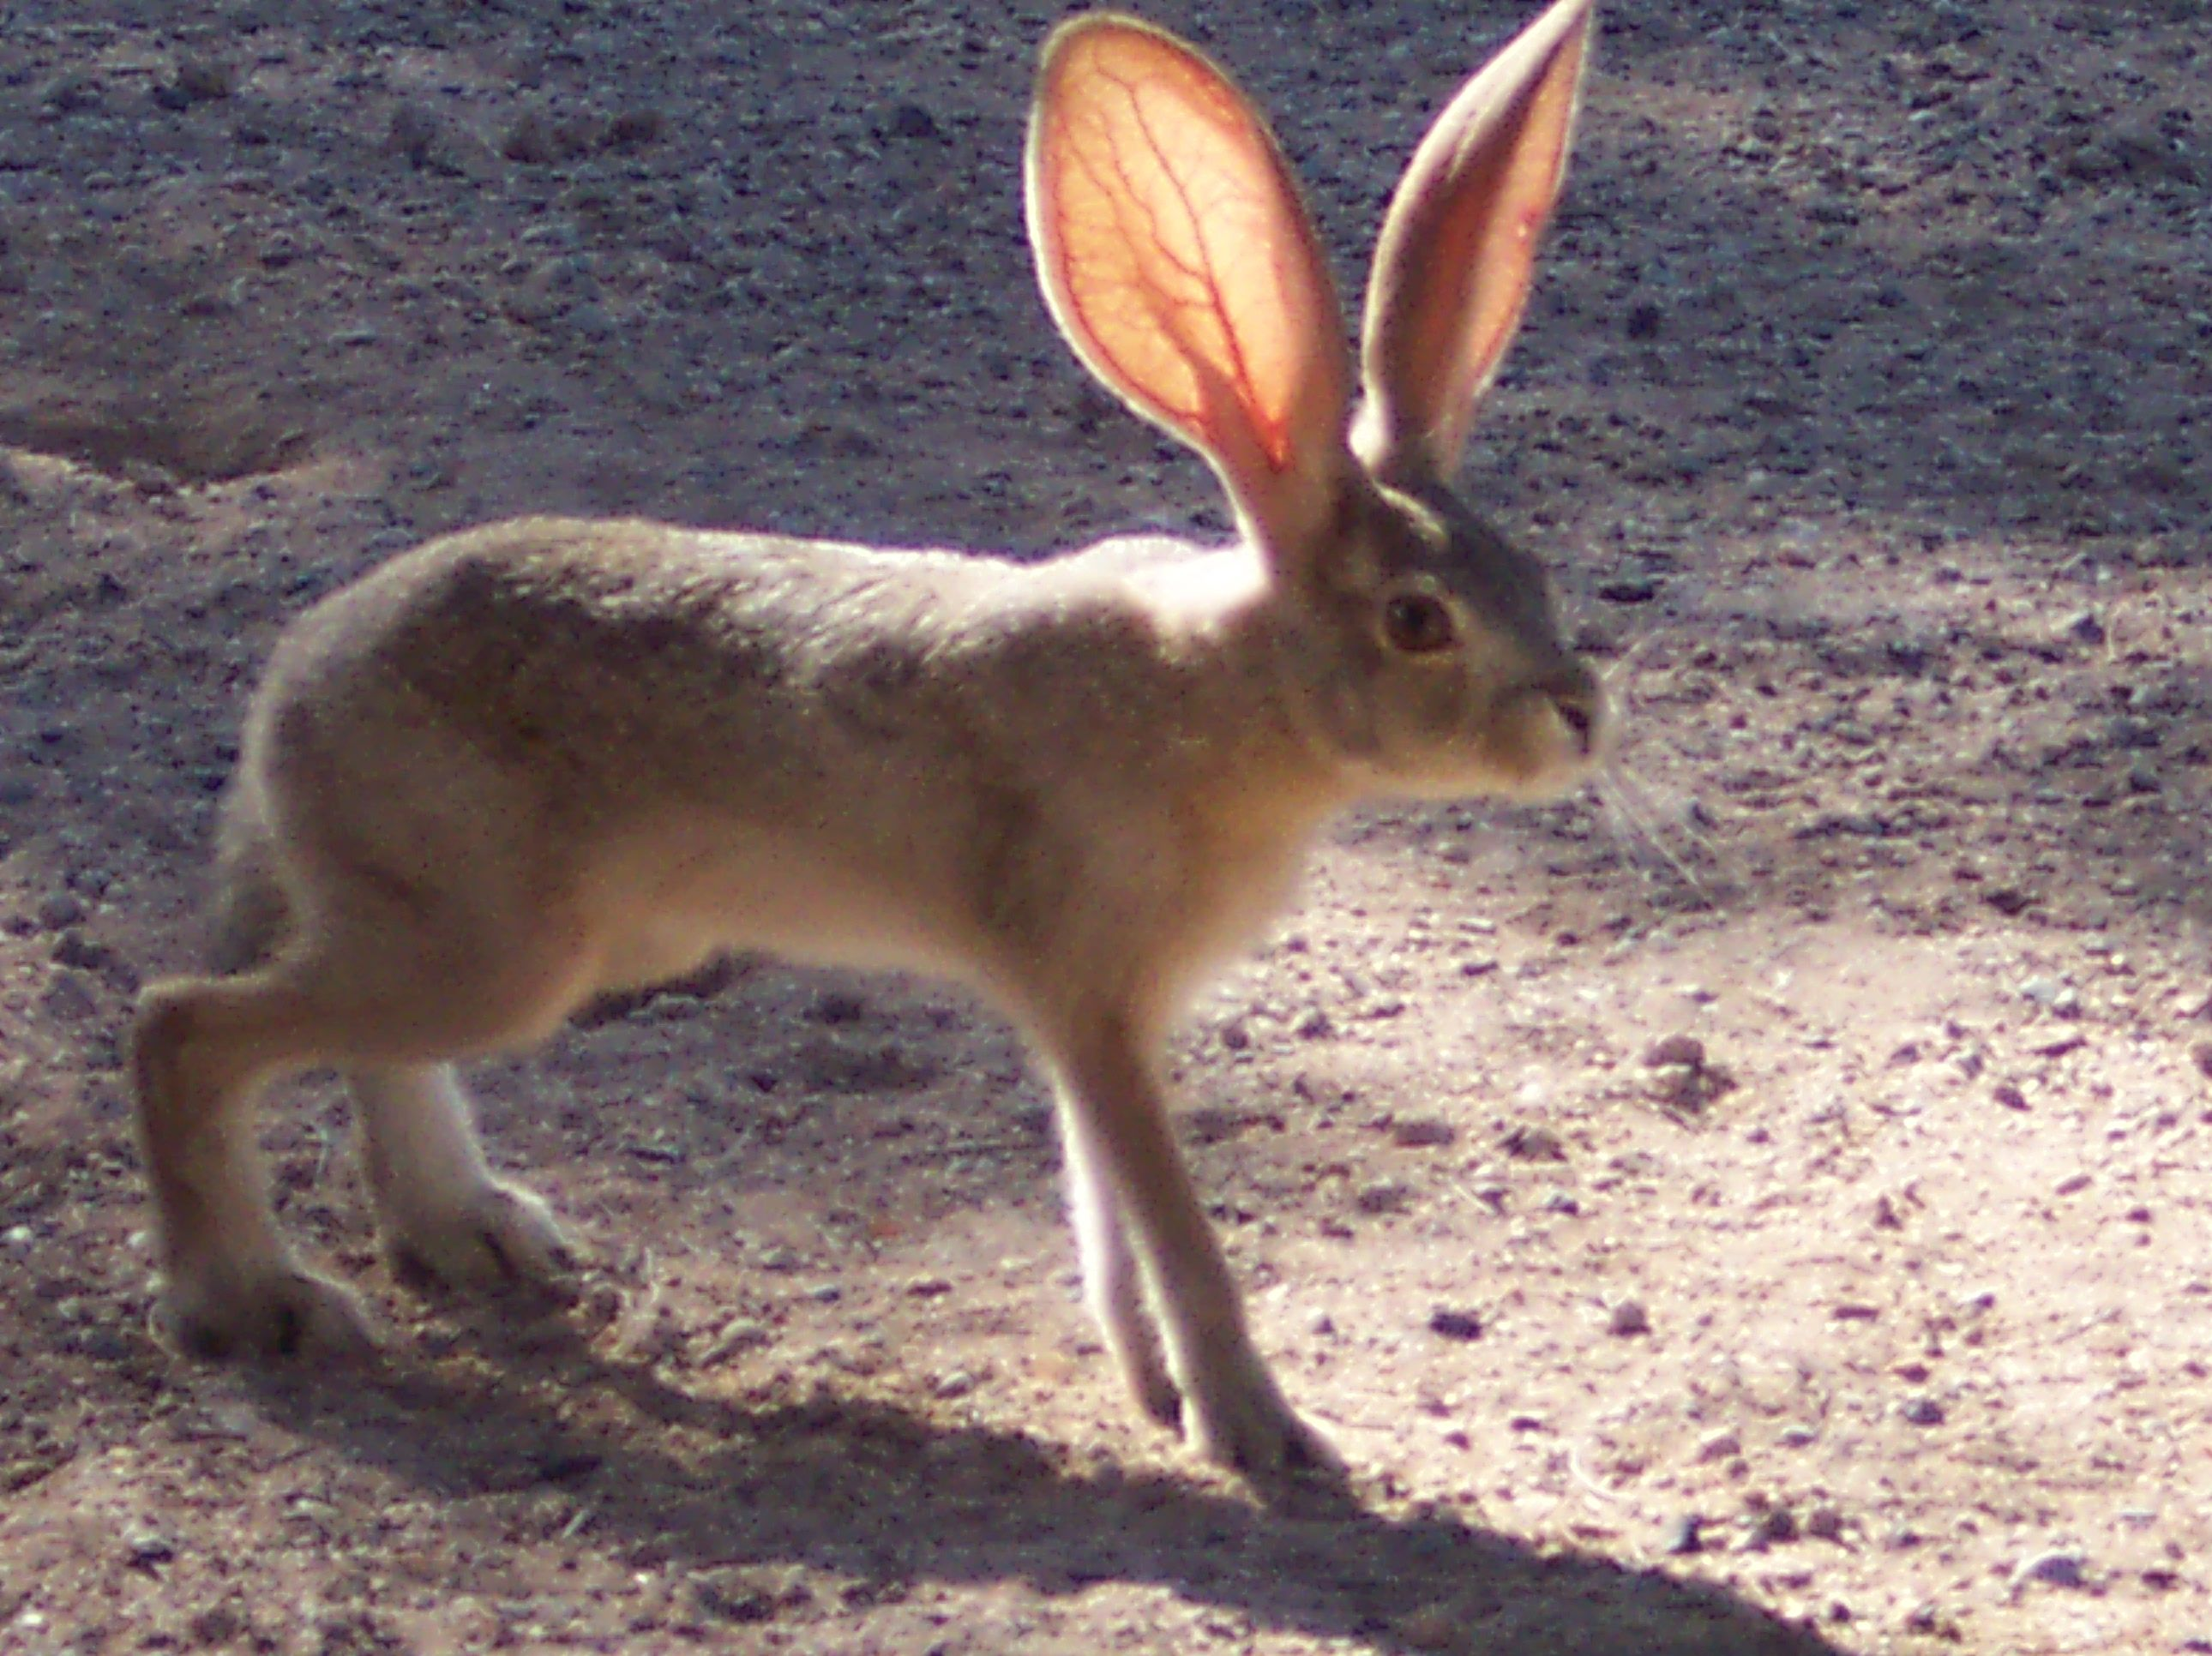 The large ears are thought to be part of the animal's